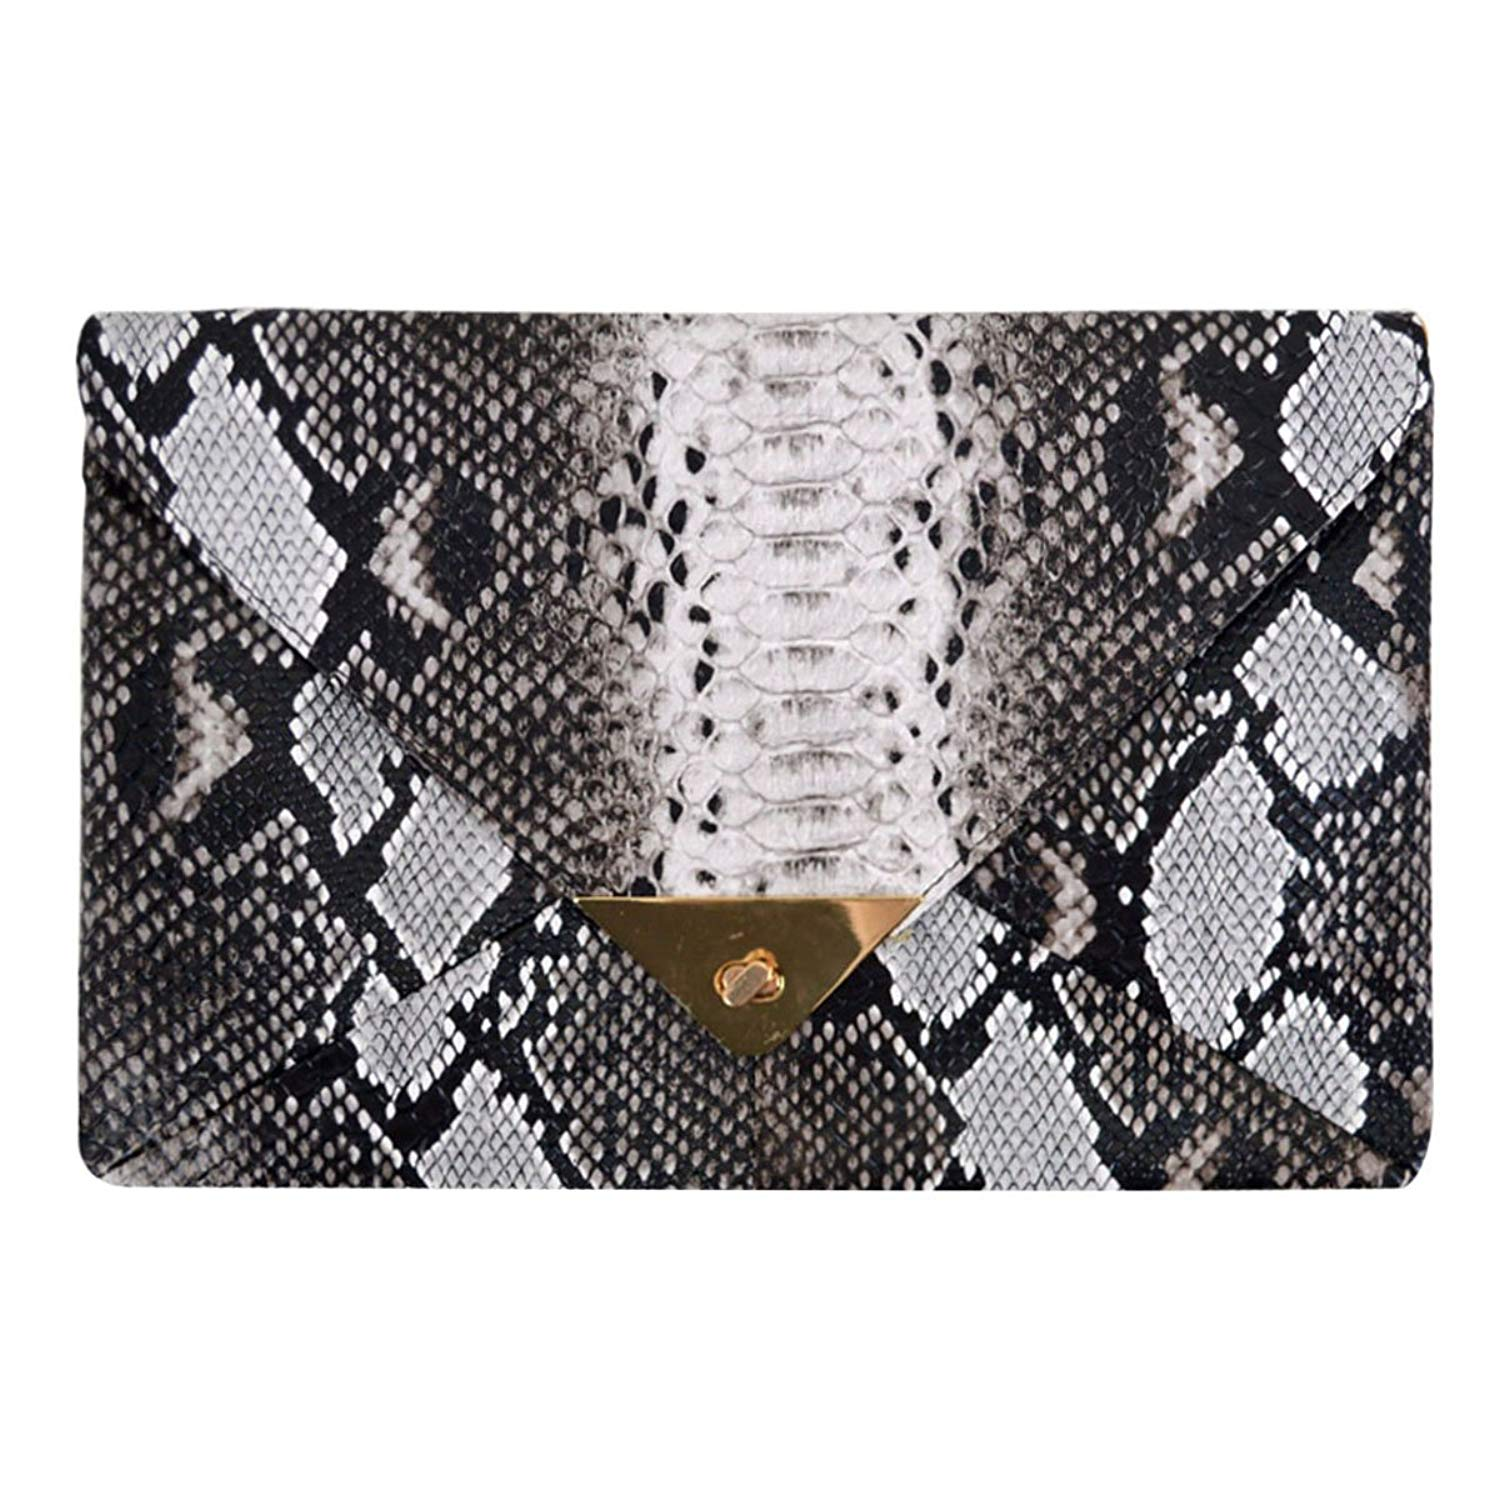 7fb0f16425 Get Quotations · CLARA Women Fashion Snakeskin Clutch Handbag Envelope Bag  Chain Shoulder Bag Evening Party Bag